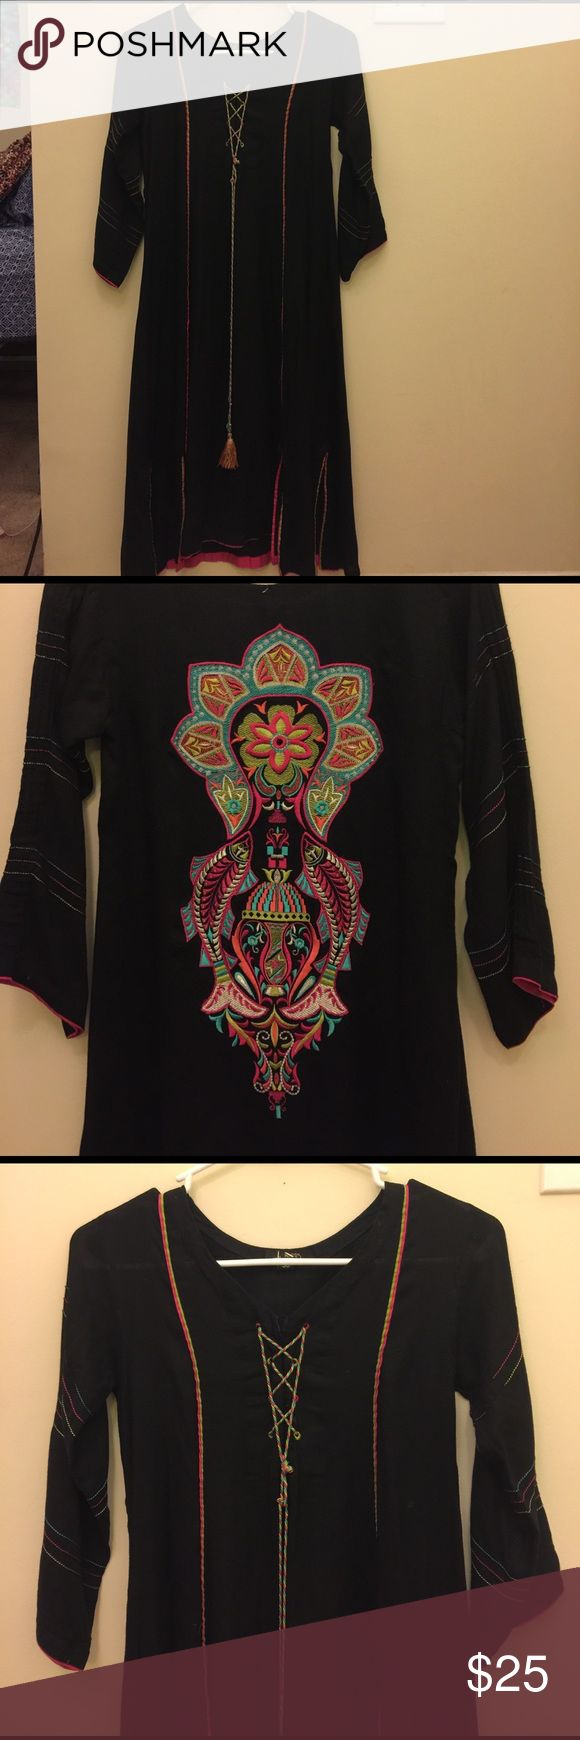 """J Crew teens embroidered dress Definitely for younger more """"preteen"""" girls. Very pretty embroidery on the back and a pretty tassel on the front. J Teens Dresses Casual"""